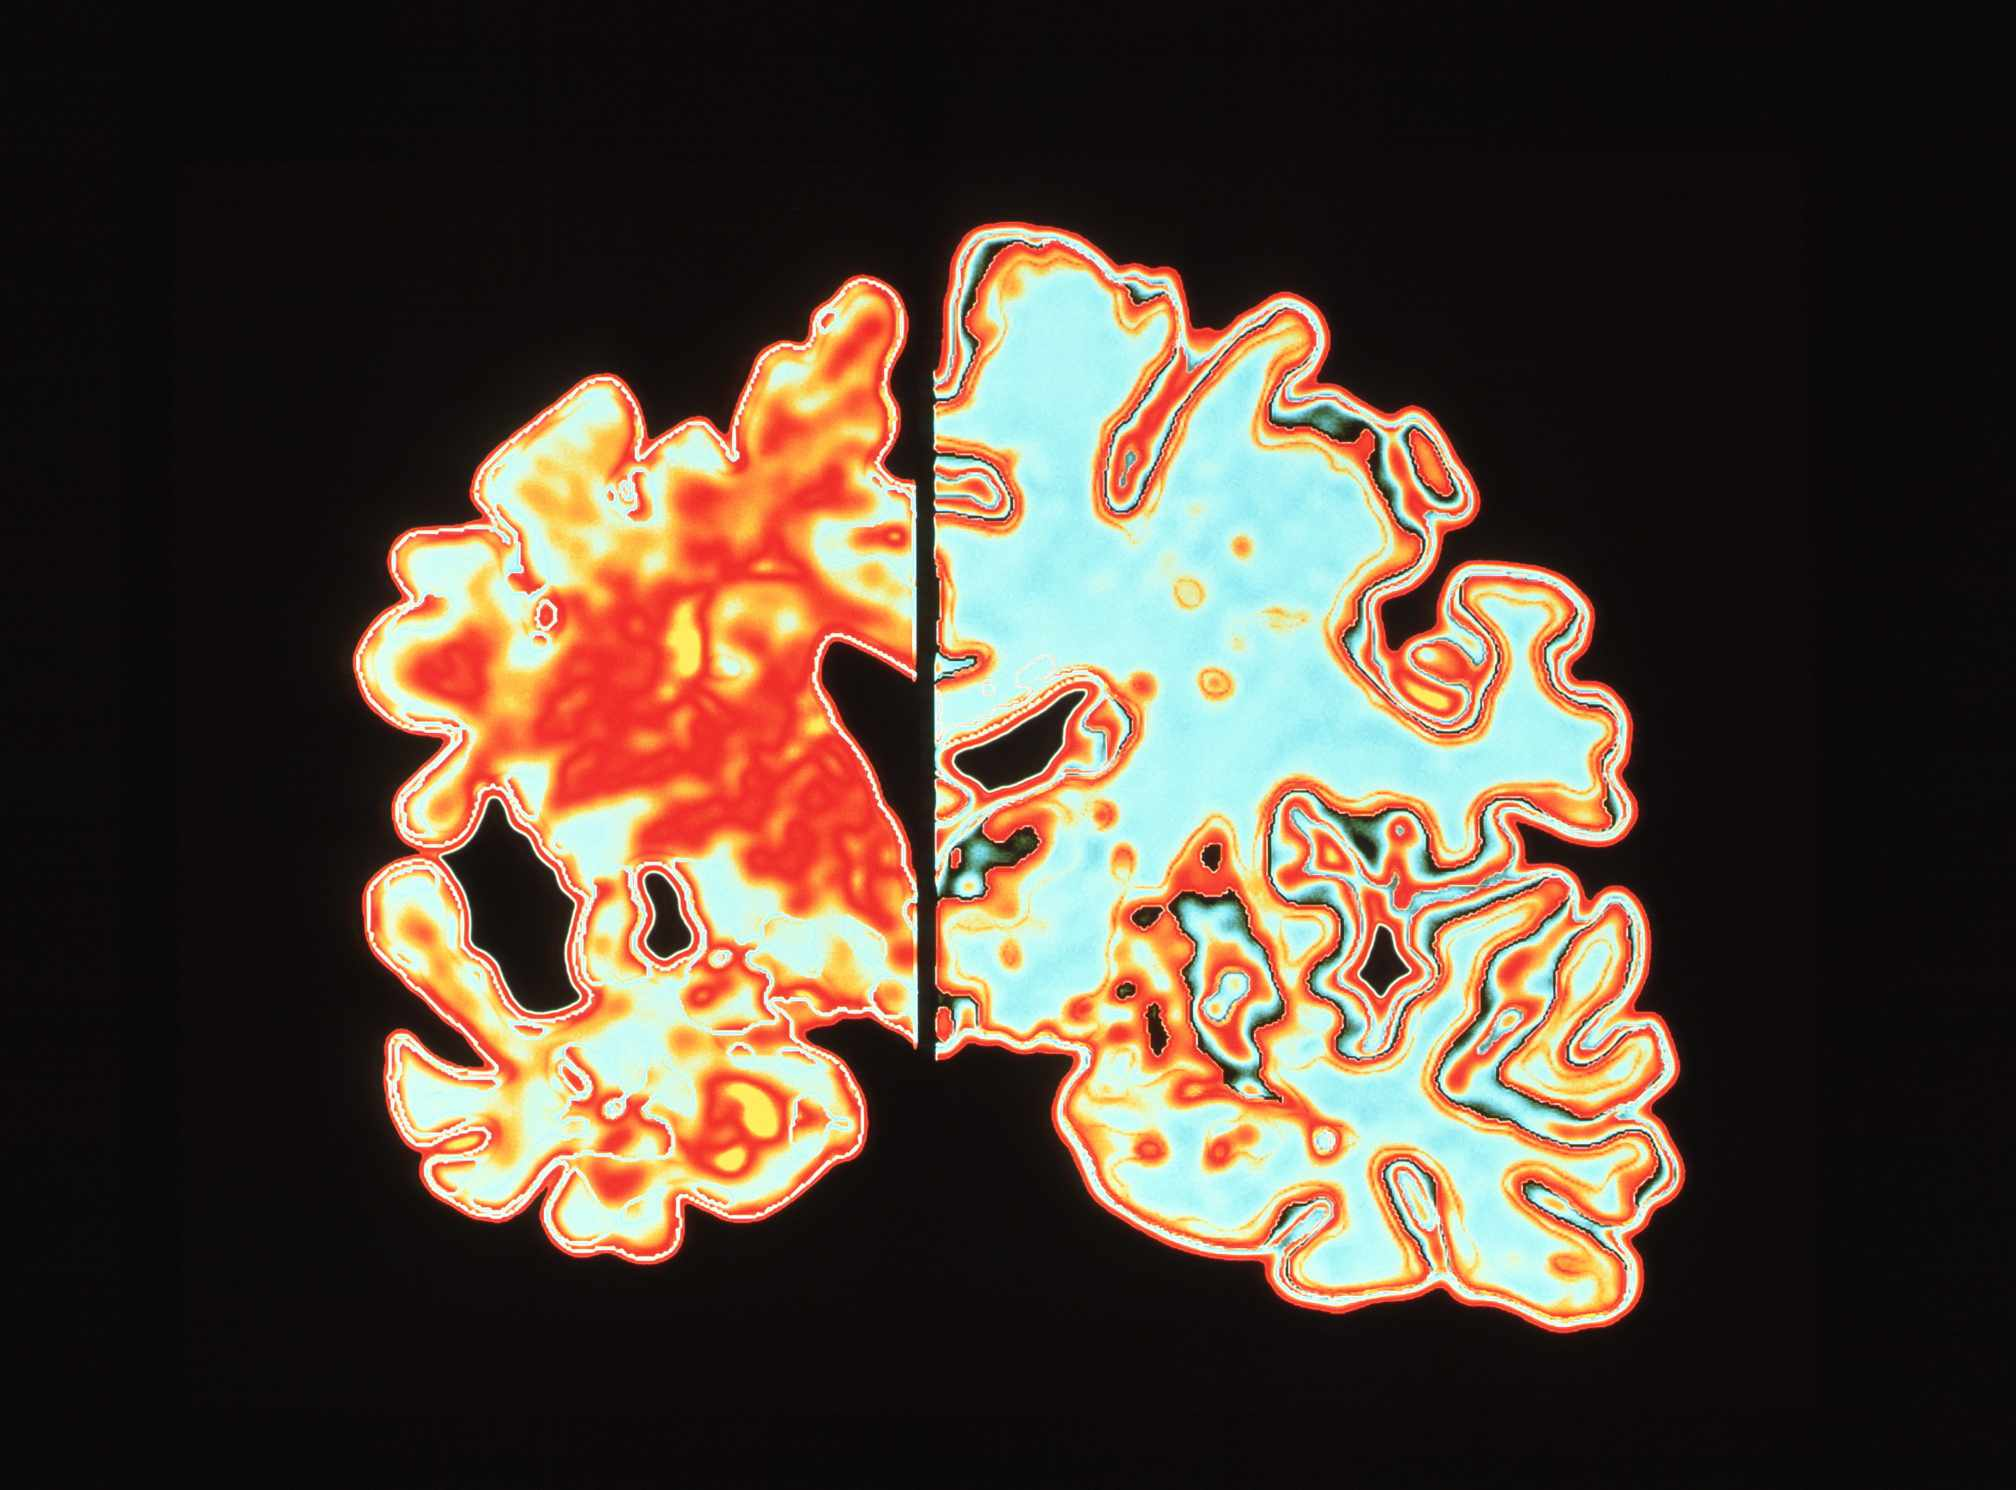 Image Comparing Alzheimers Brain With A Normal Brain